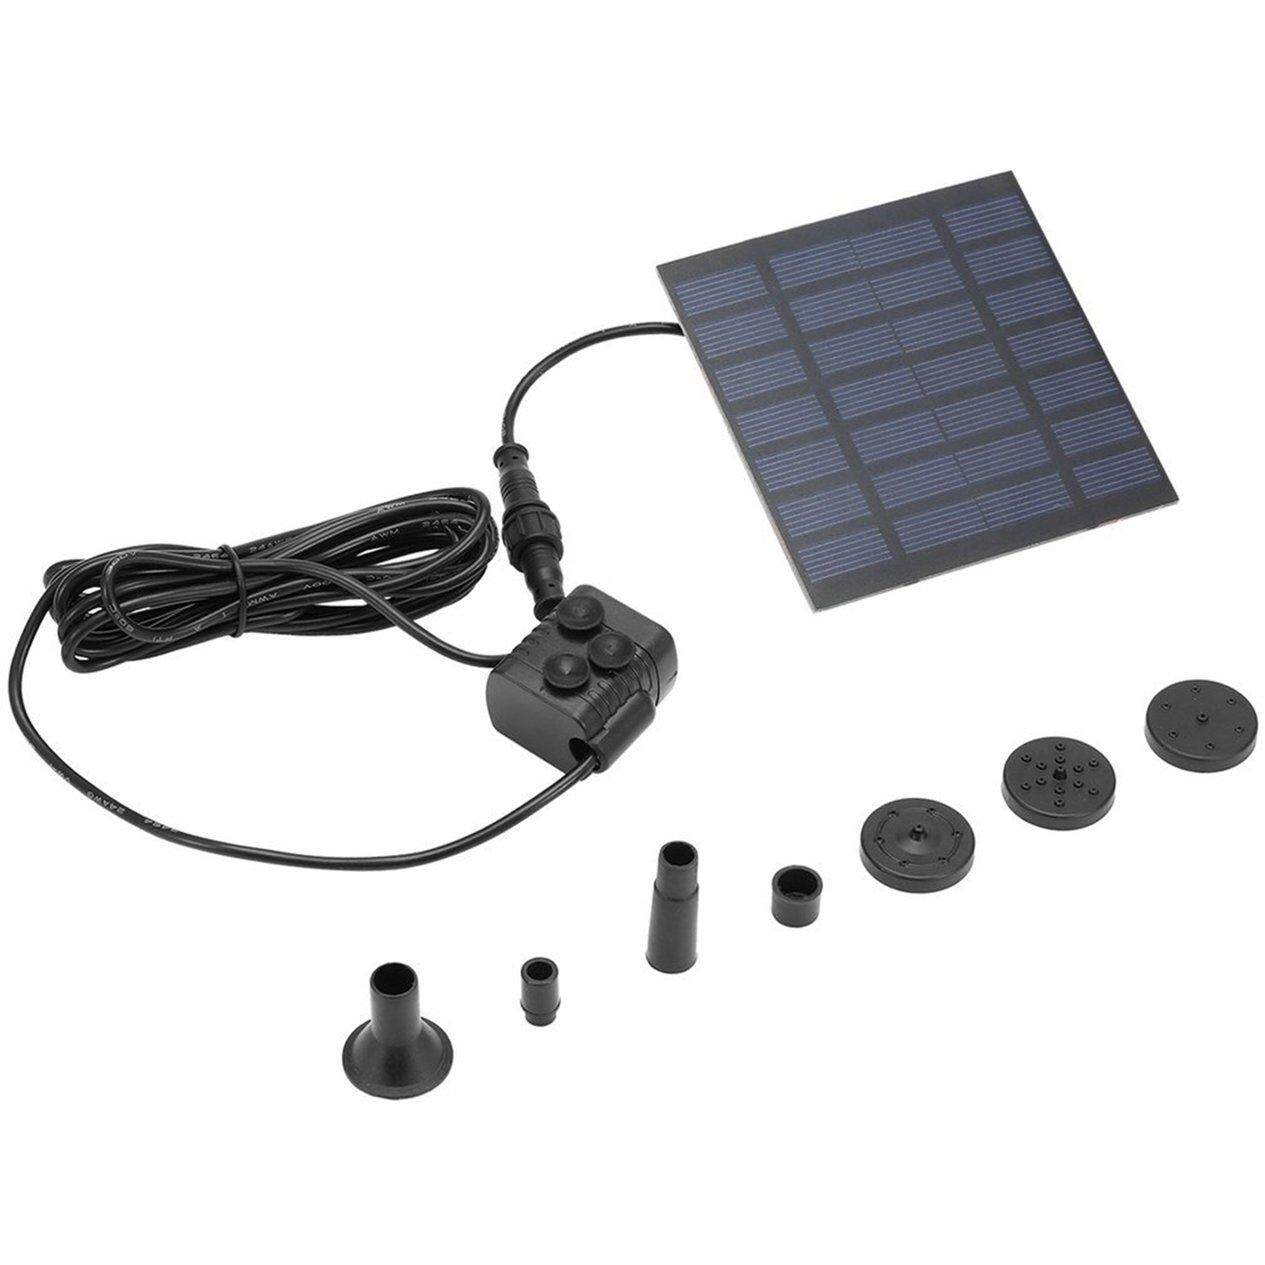 Hot Sale Solar Power Floating Fountain Water Pump For Garden Pond Pool Landscape Pool